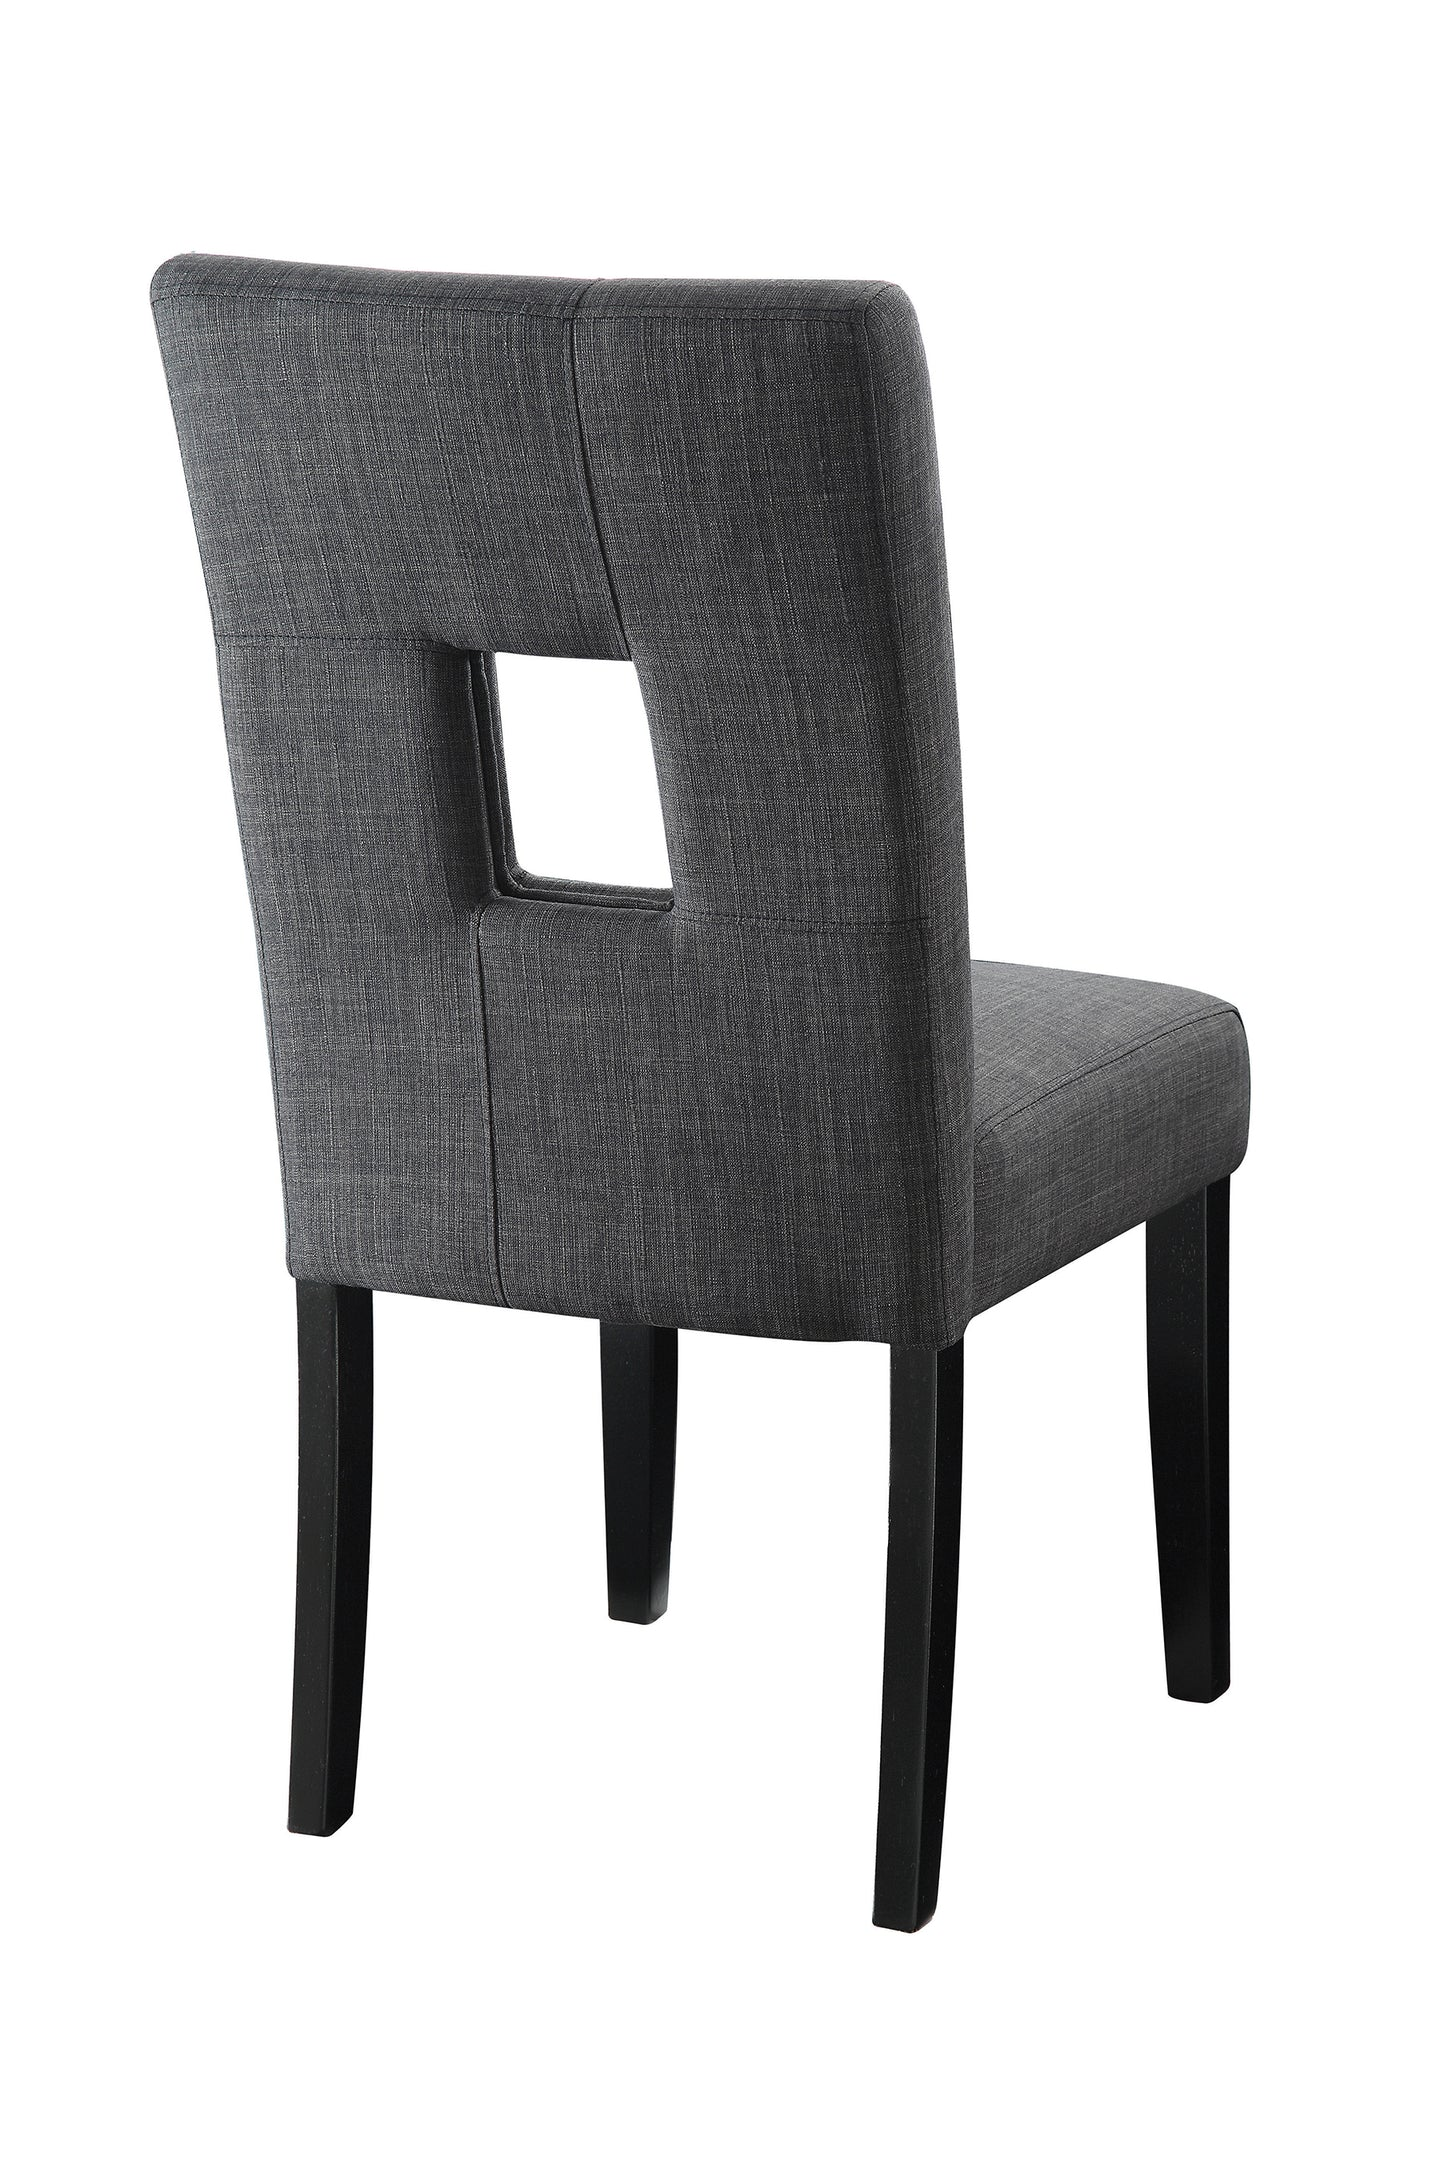 Coaster Andenne Grey Dining Chair Set of 2